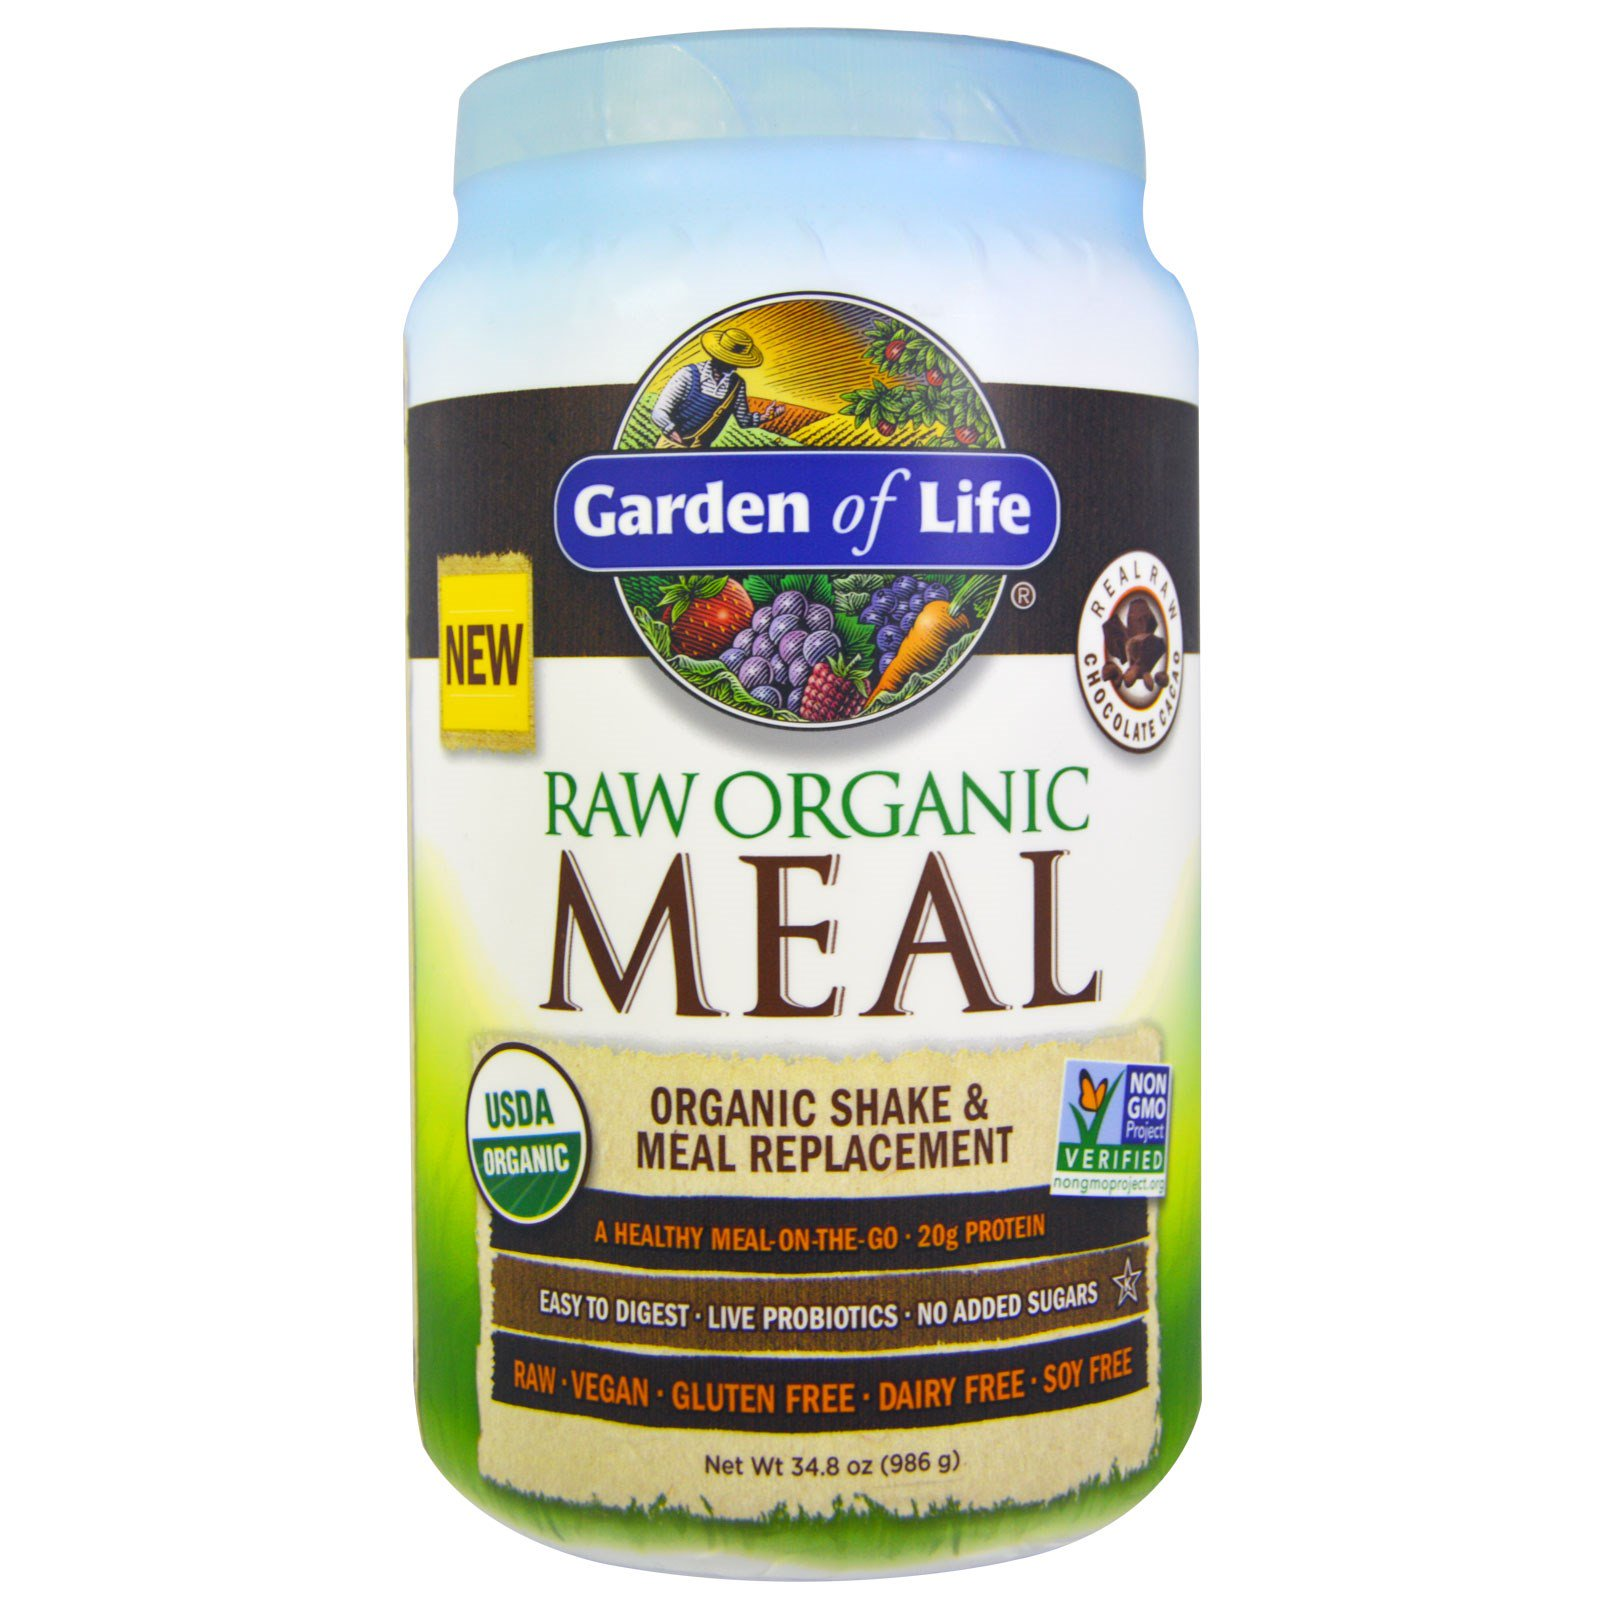 Garden Of Life Raw Organic Meal Shake Meal Replacement Chocolate Cacao 35 9 Oz 1 017g